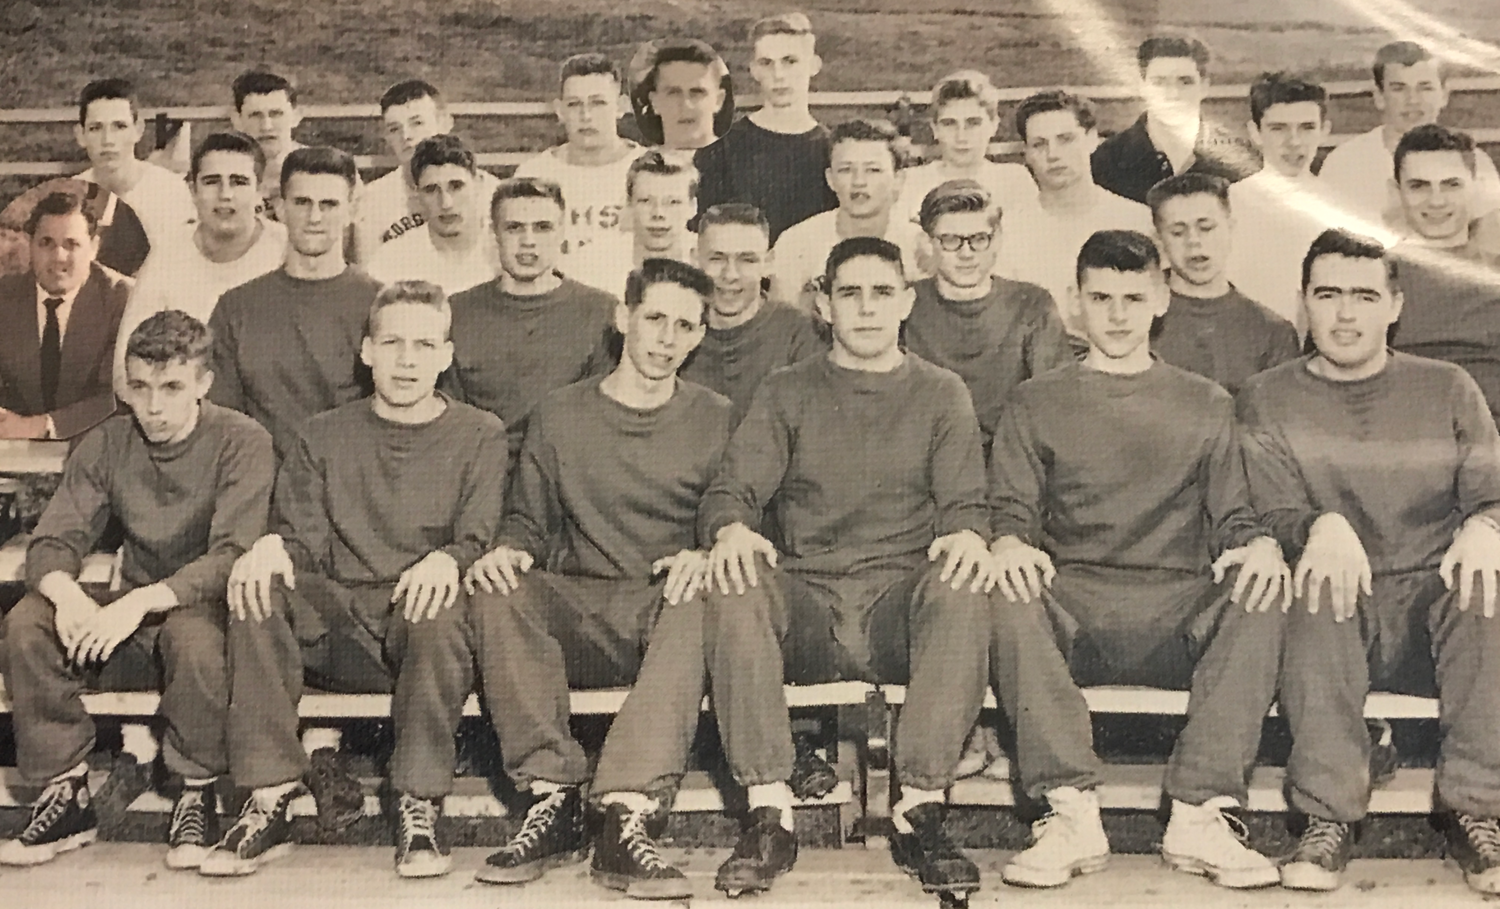 1954 Boys' Track and Field Team